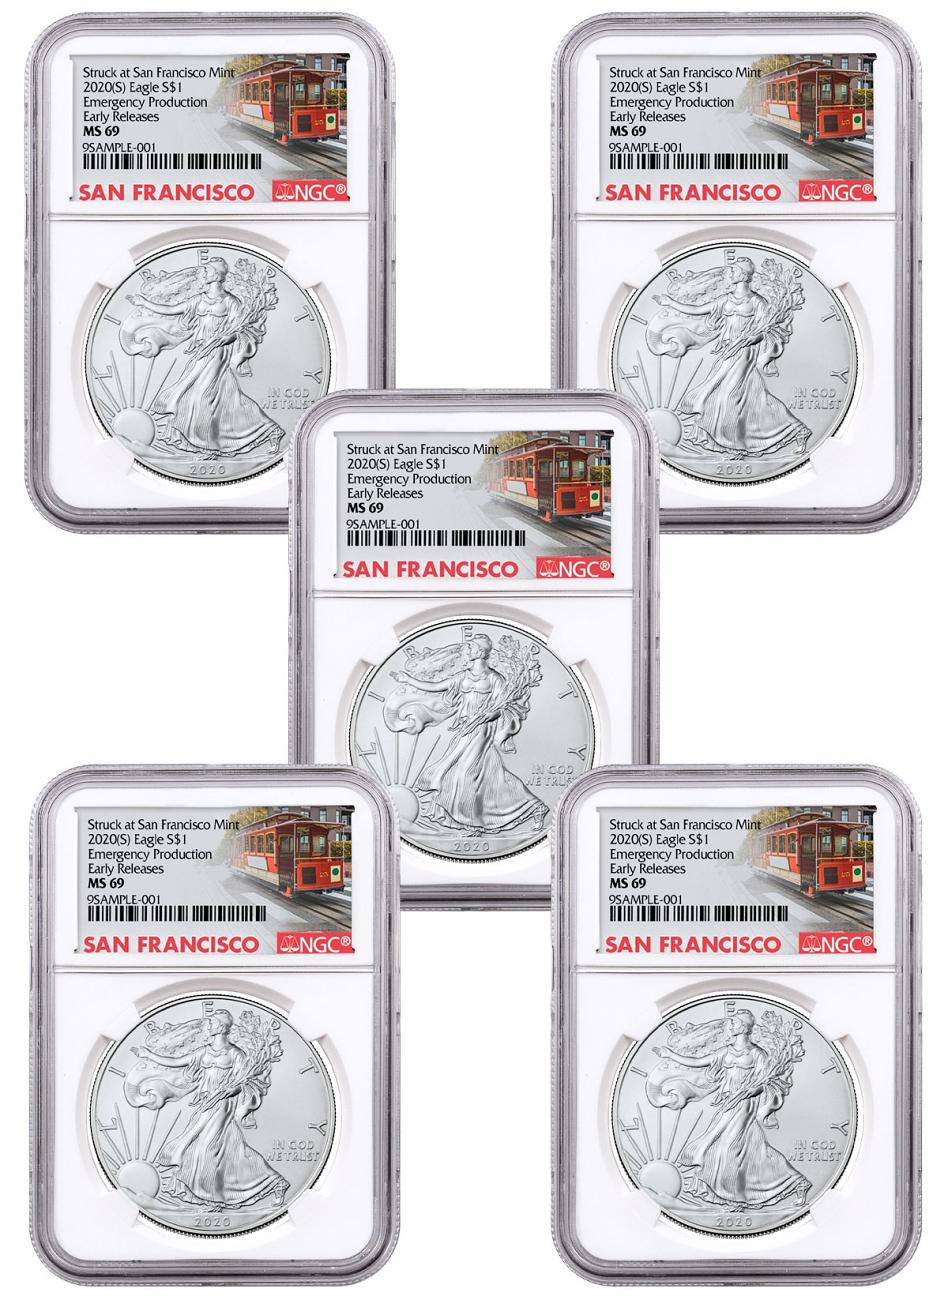 5-Pack - 2020-(S) 1 oz American Silver Eagle Struck at San Francisco Mint Emergency Production NGC MS69 ER Trolley Label